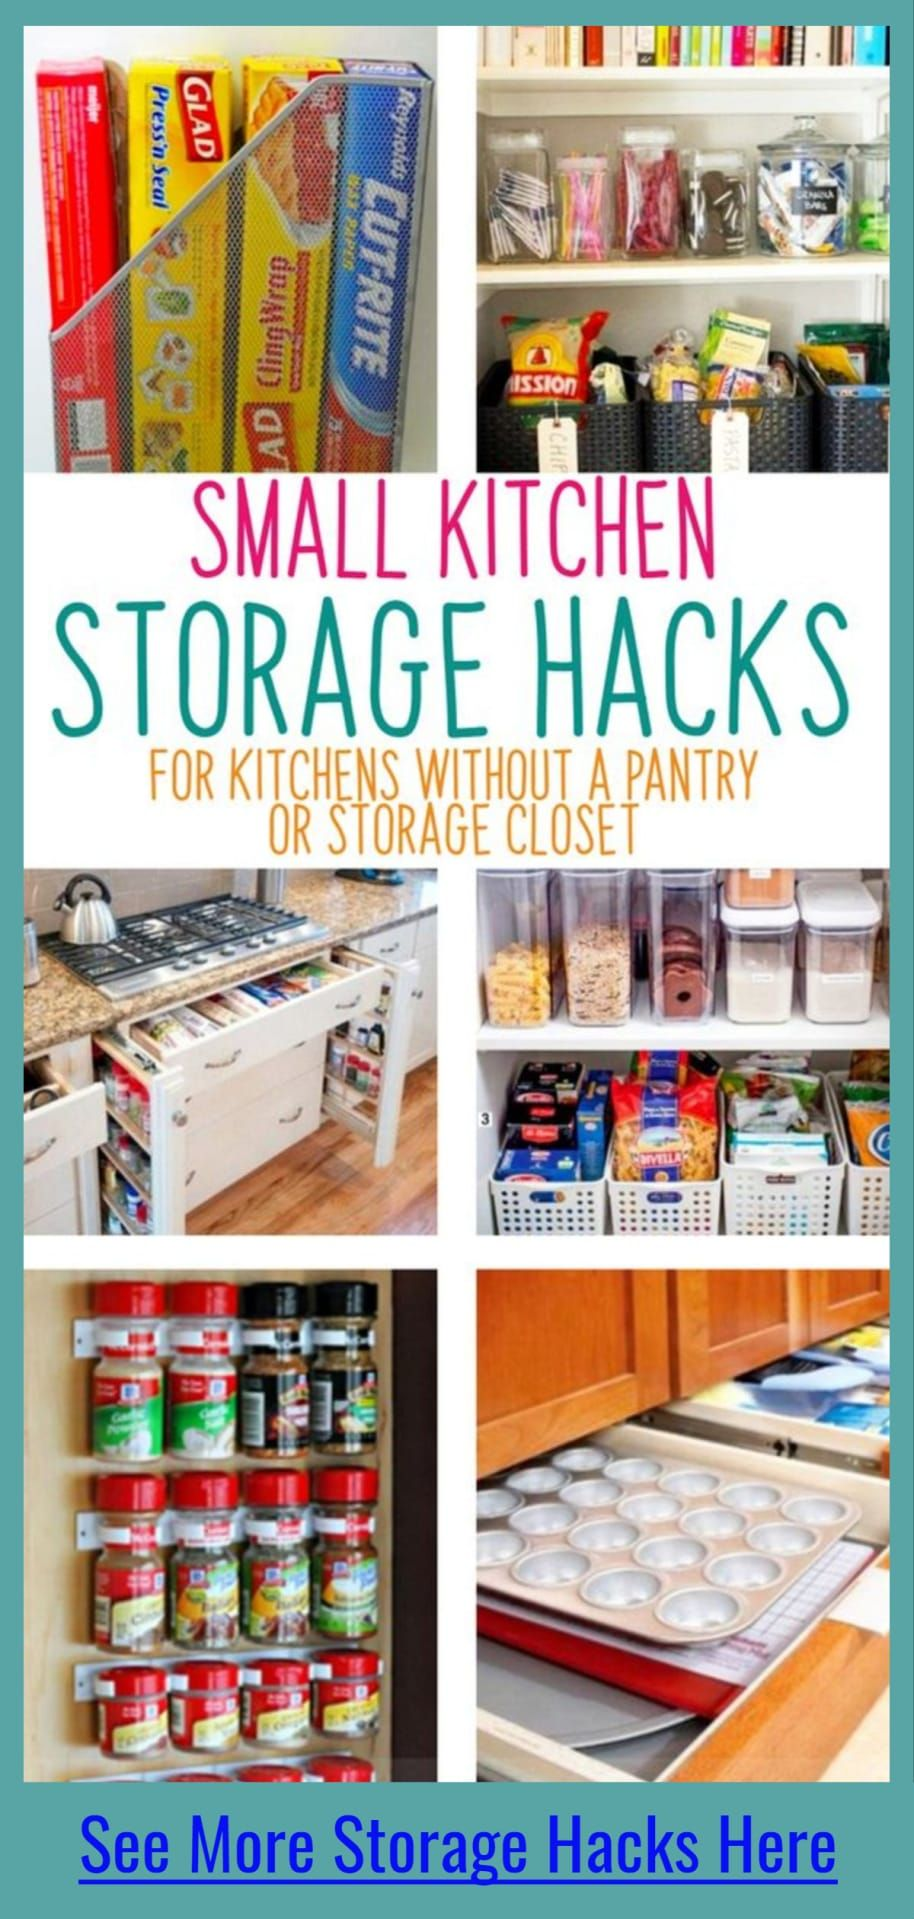 Small Apartment Kitchen Storage Ideas That Won T Risk Your Deposit Small Kitchen Hacks Small Kitchen Storage Storage Solutions Diy